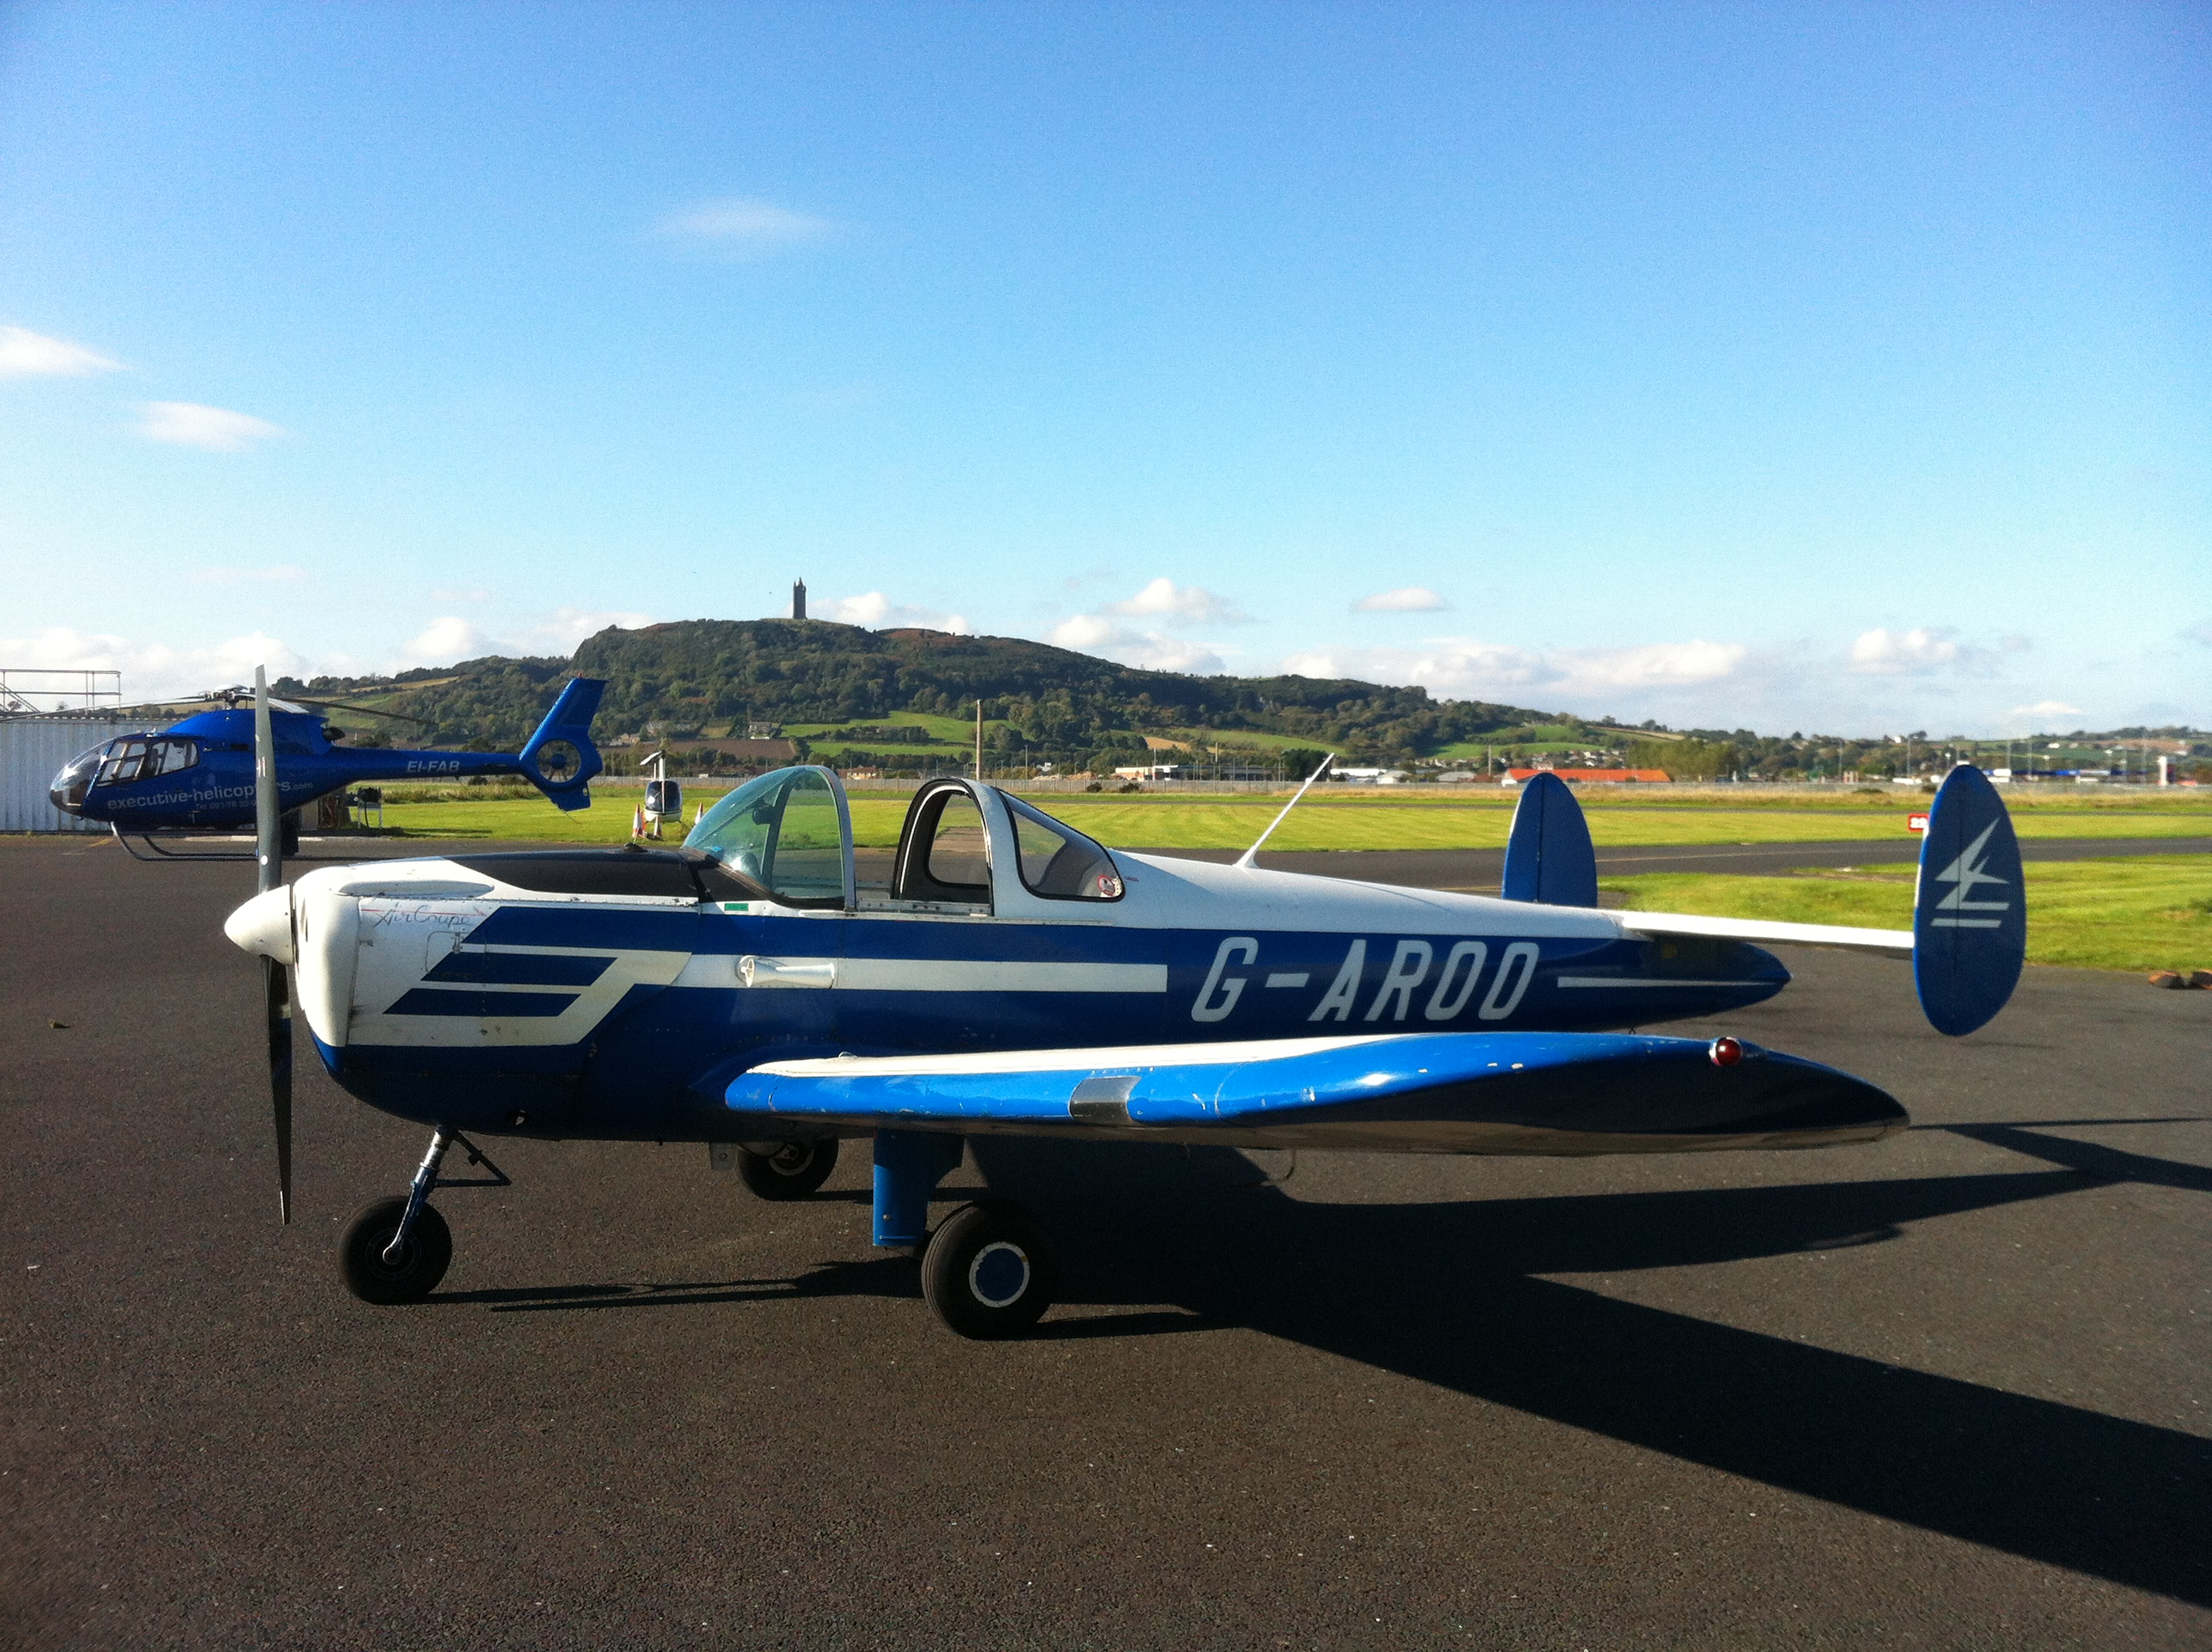 Ulster Flying Club - Flying Lessons in Northern Ireland